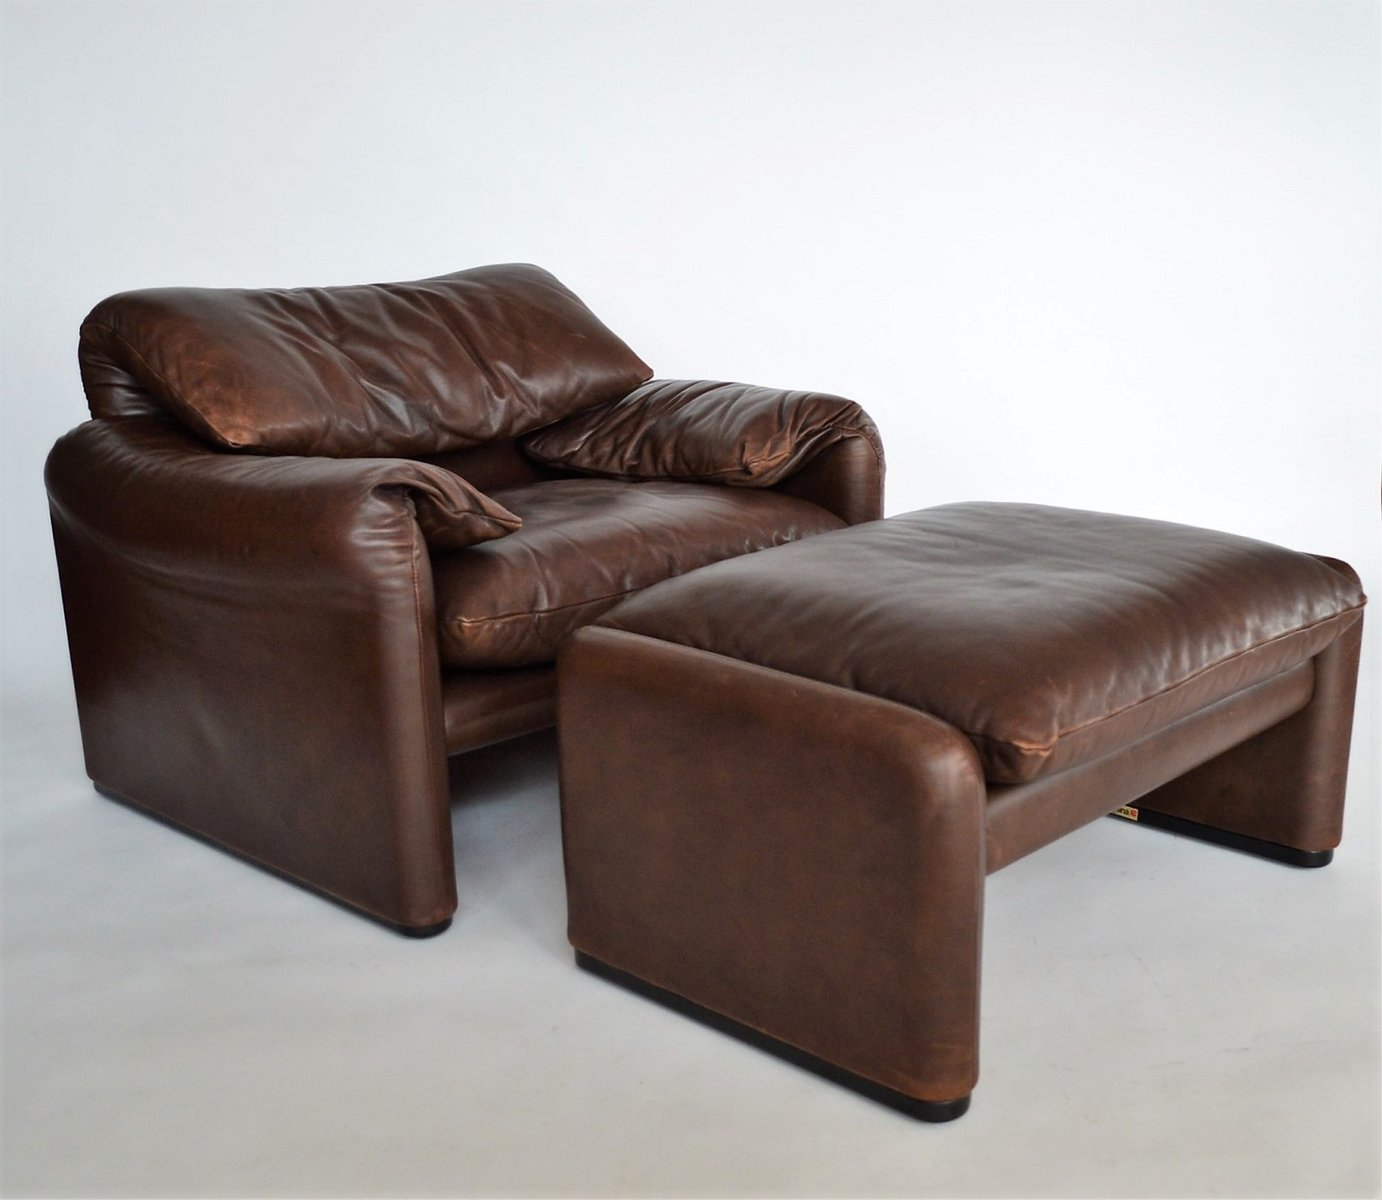 Maralunga Leather Lounge Chair U0026 Ottoman By Vico Magistretti For Cassina,  1970s